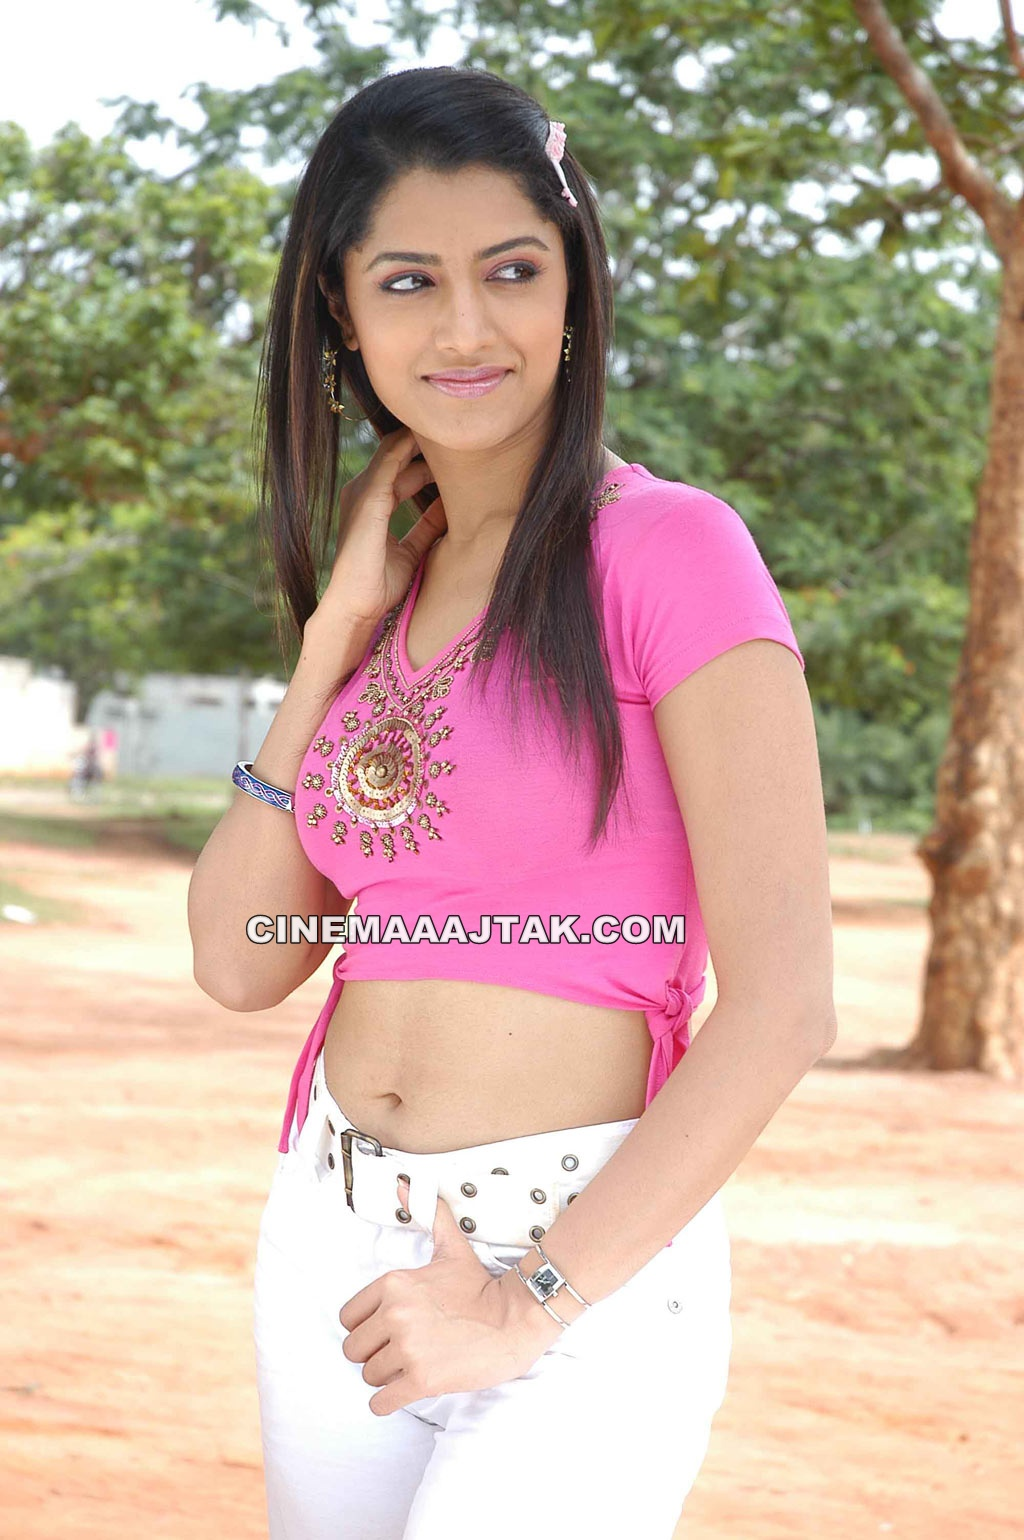 https://1.bp.blogspot.com/-3V0UX27EG6k/T-vhHM-aT0I/AAAAAAAAJHs/JdUNeLi3qzA/s1600/Mamta+Mohan+Das+Looking+Hot+In+Koruku+Pettai+Coolie+Movie+Latest+Images+ (2) .jpg